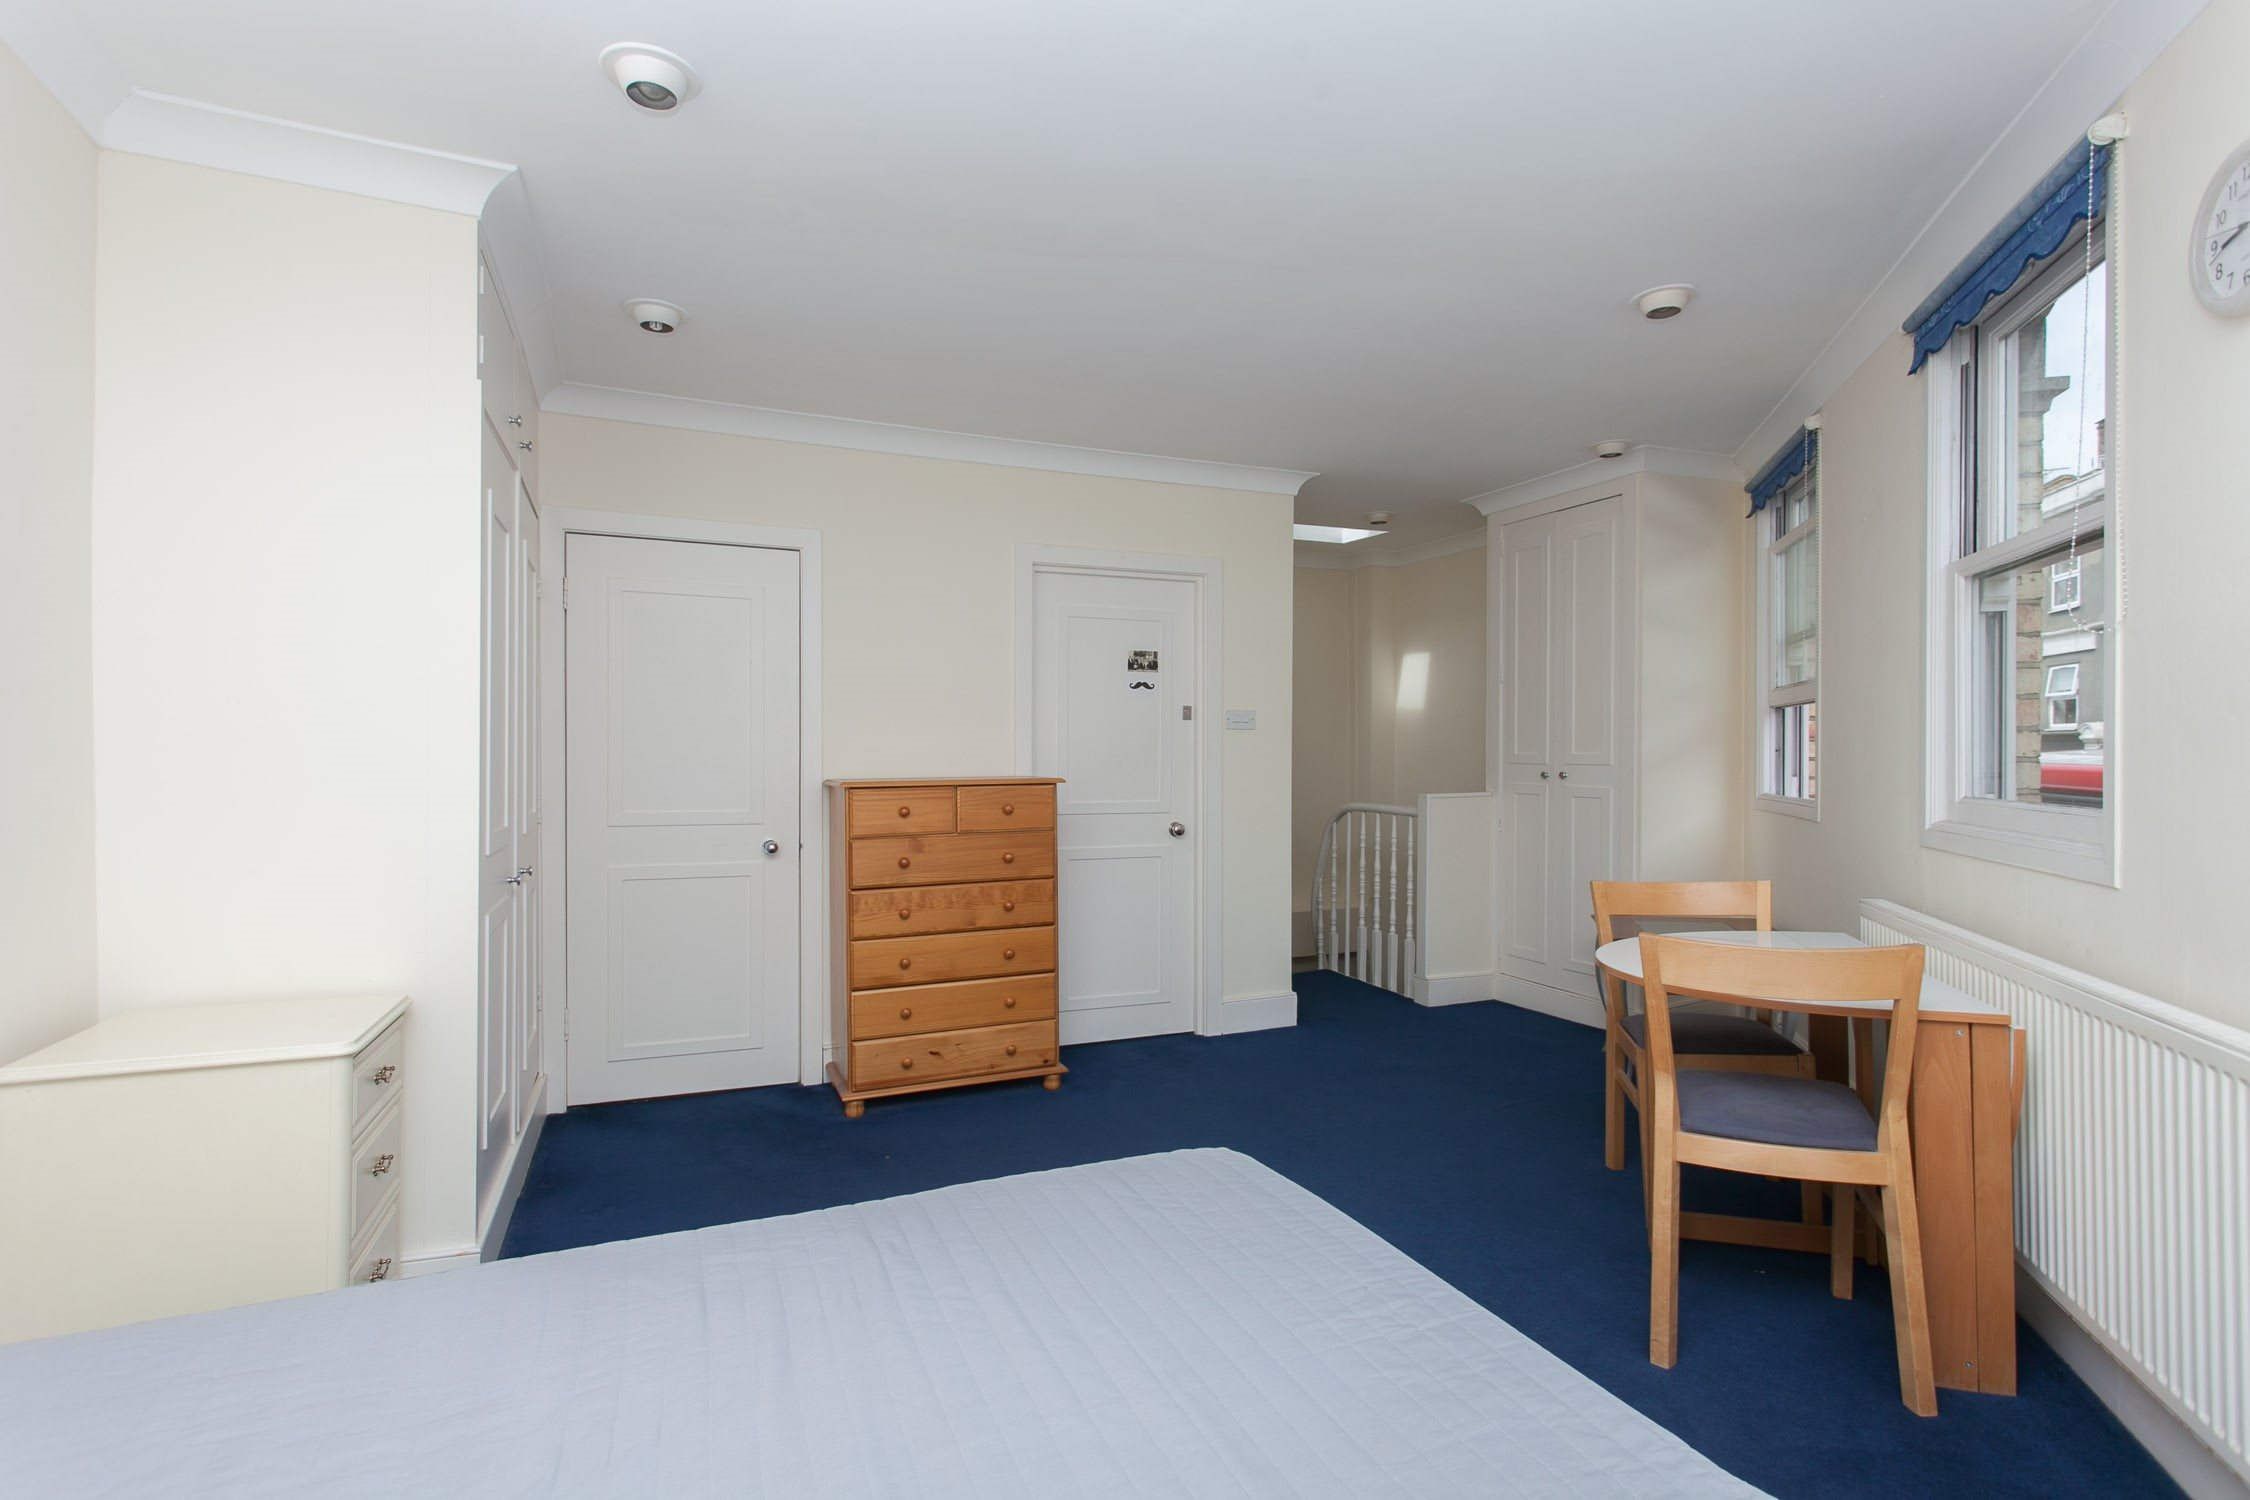 Portico Studio Flat Recently Let In Fulham Dawes Road